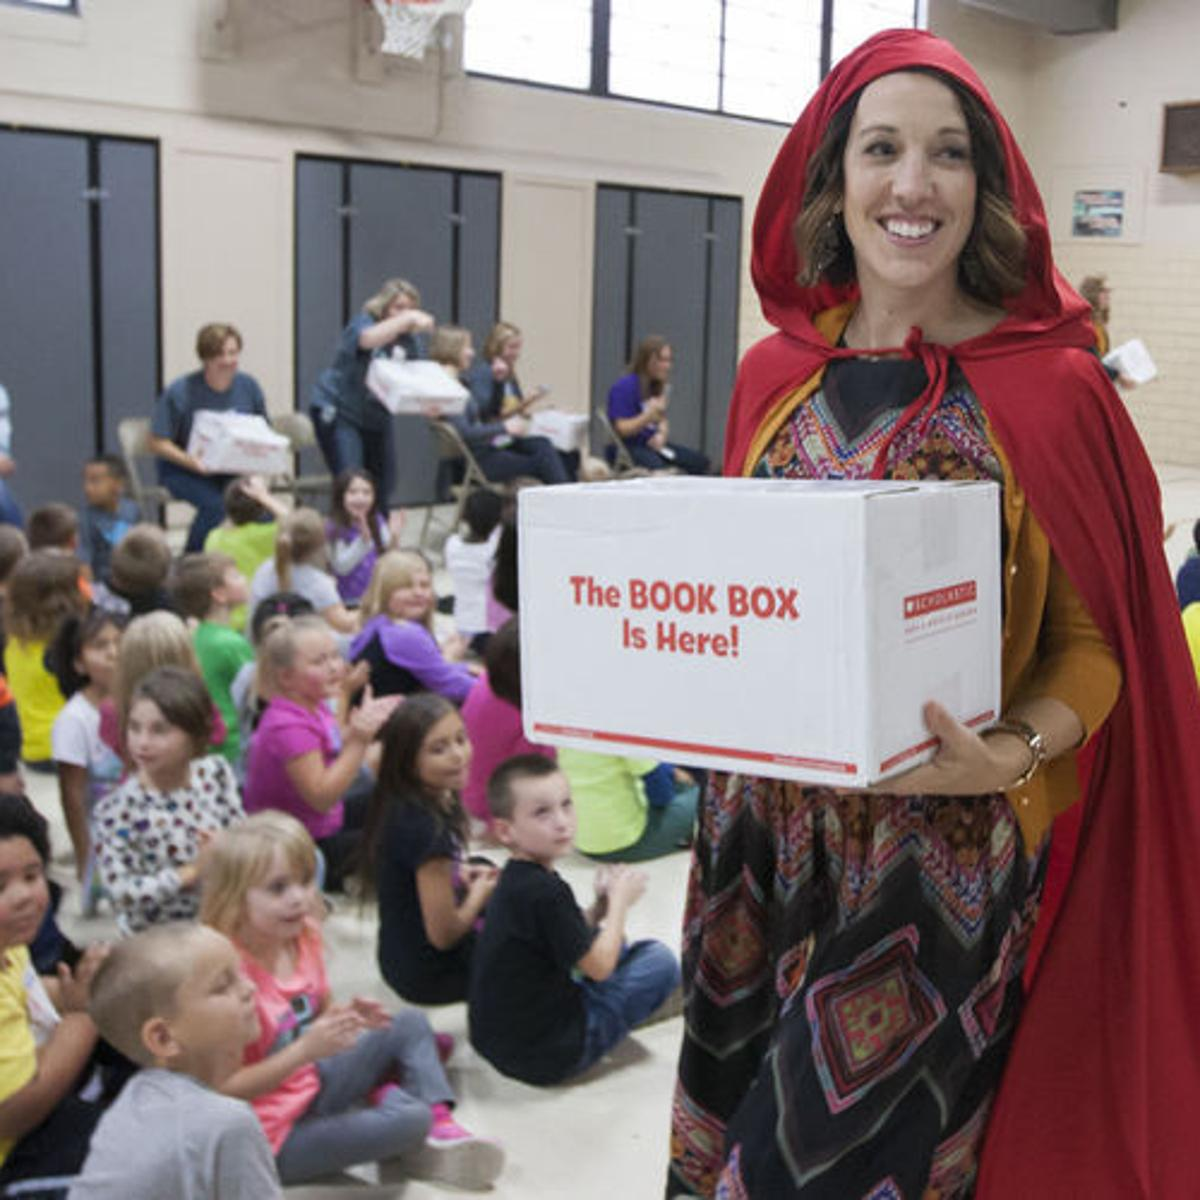 Council Bluffs schools get free books from state Book Trust program